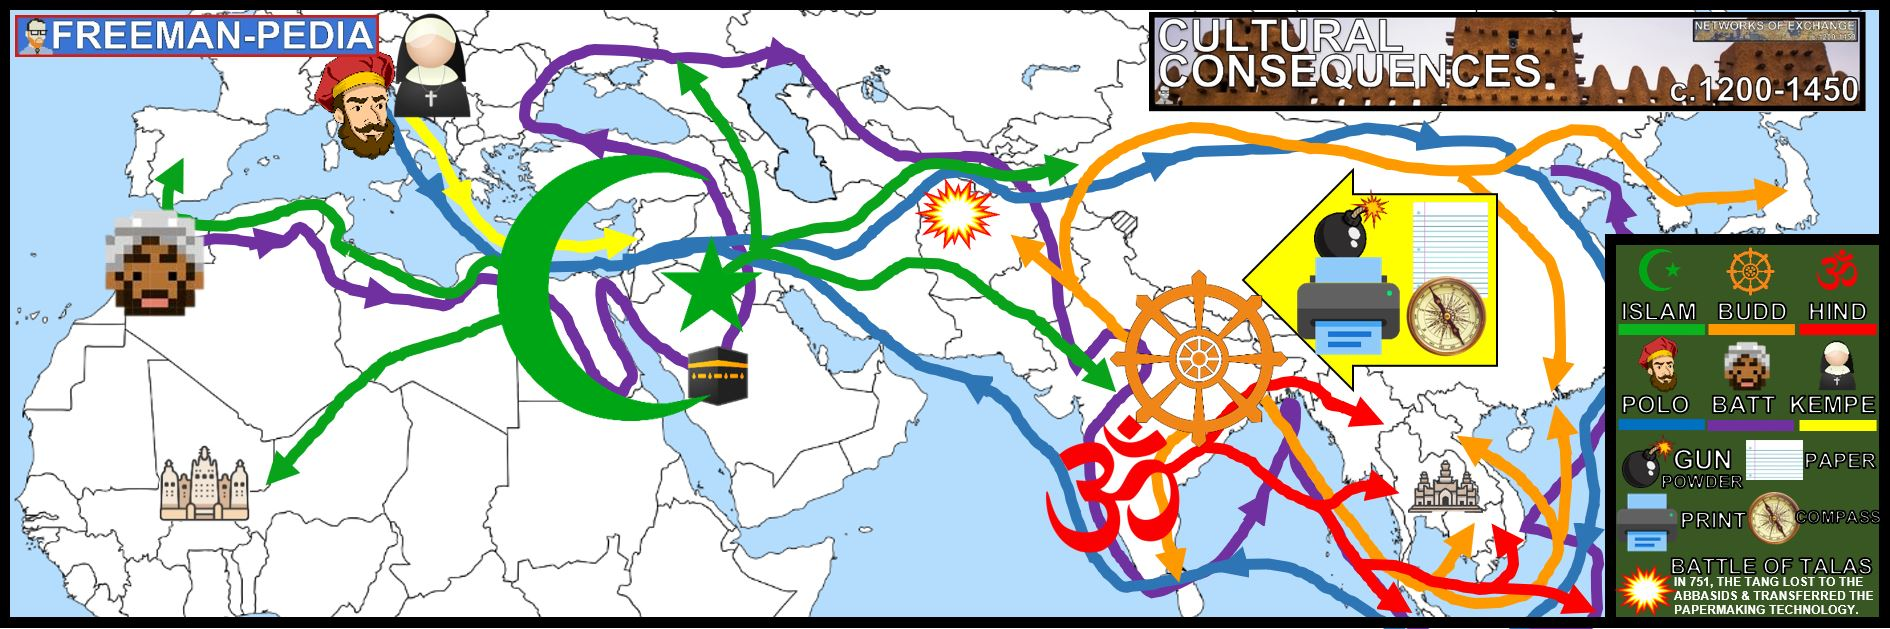 CULTURAL CONSEQUENCES MAP NETWORKS OF EXCHANGE AP WORLD HISTORY FREEMANPEDIA MODERN.JPG